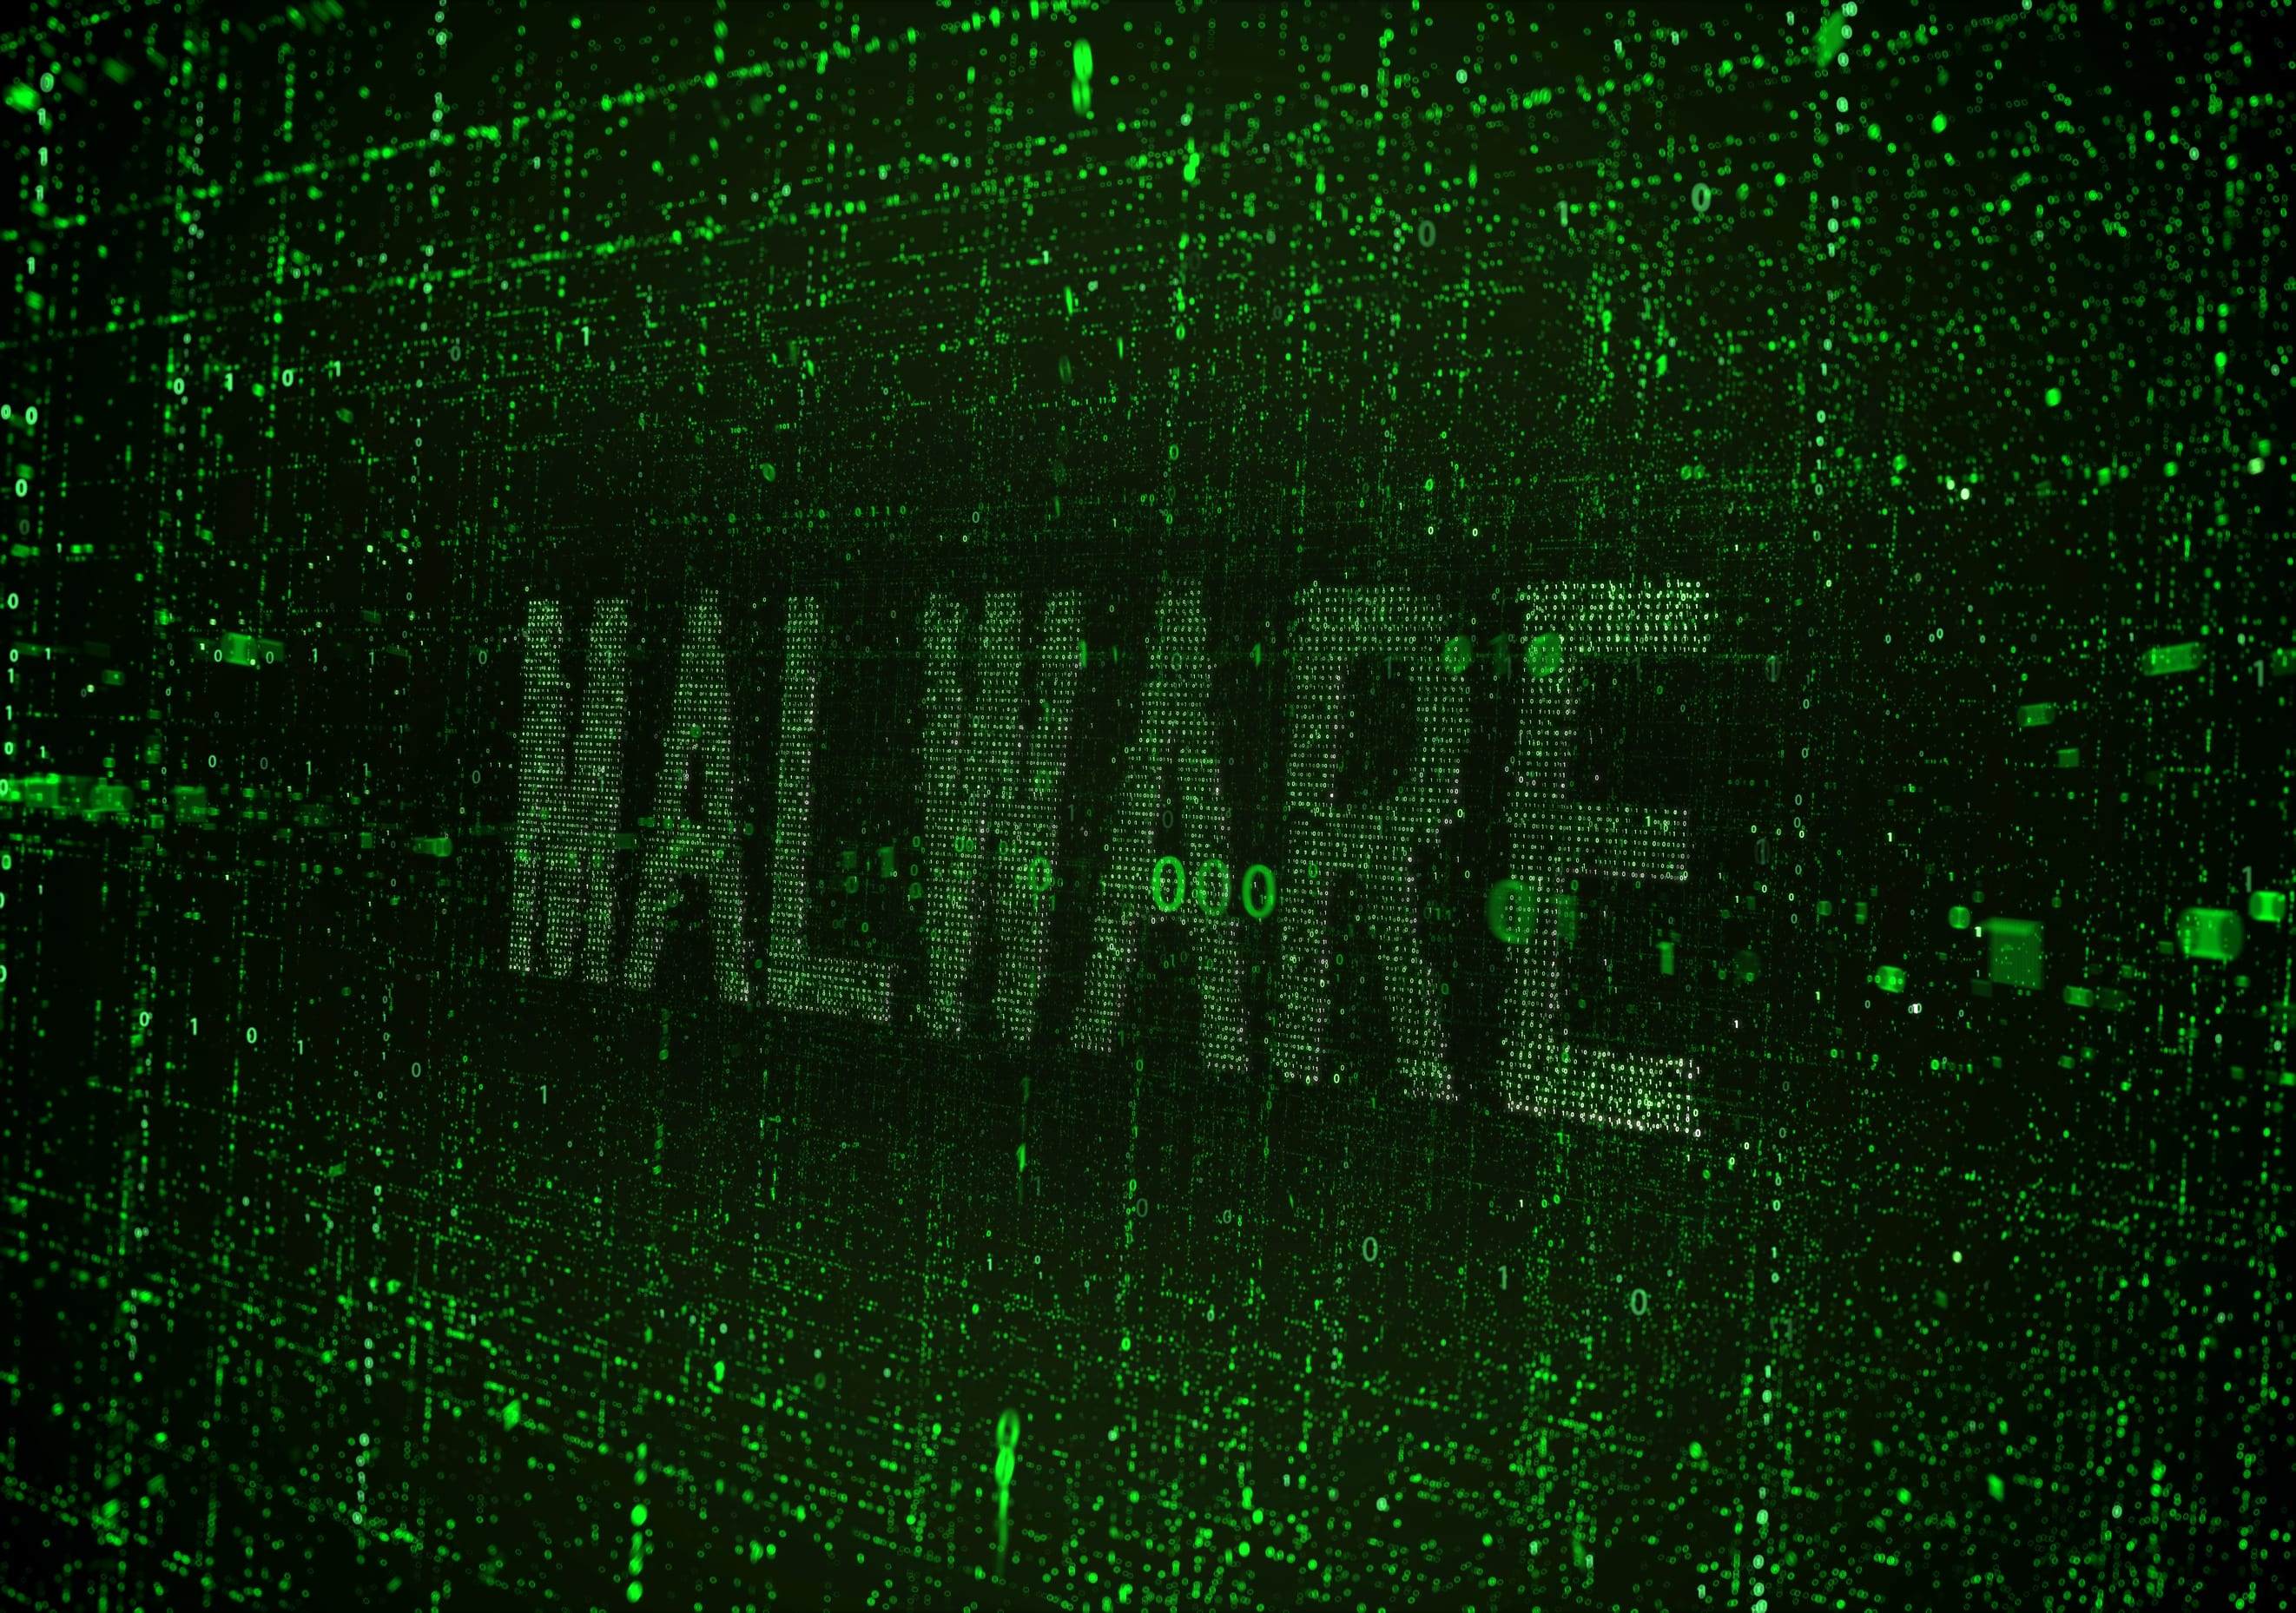 Apple Malware increased significantly in Q4 2016